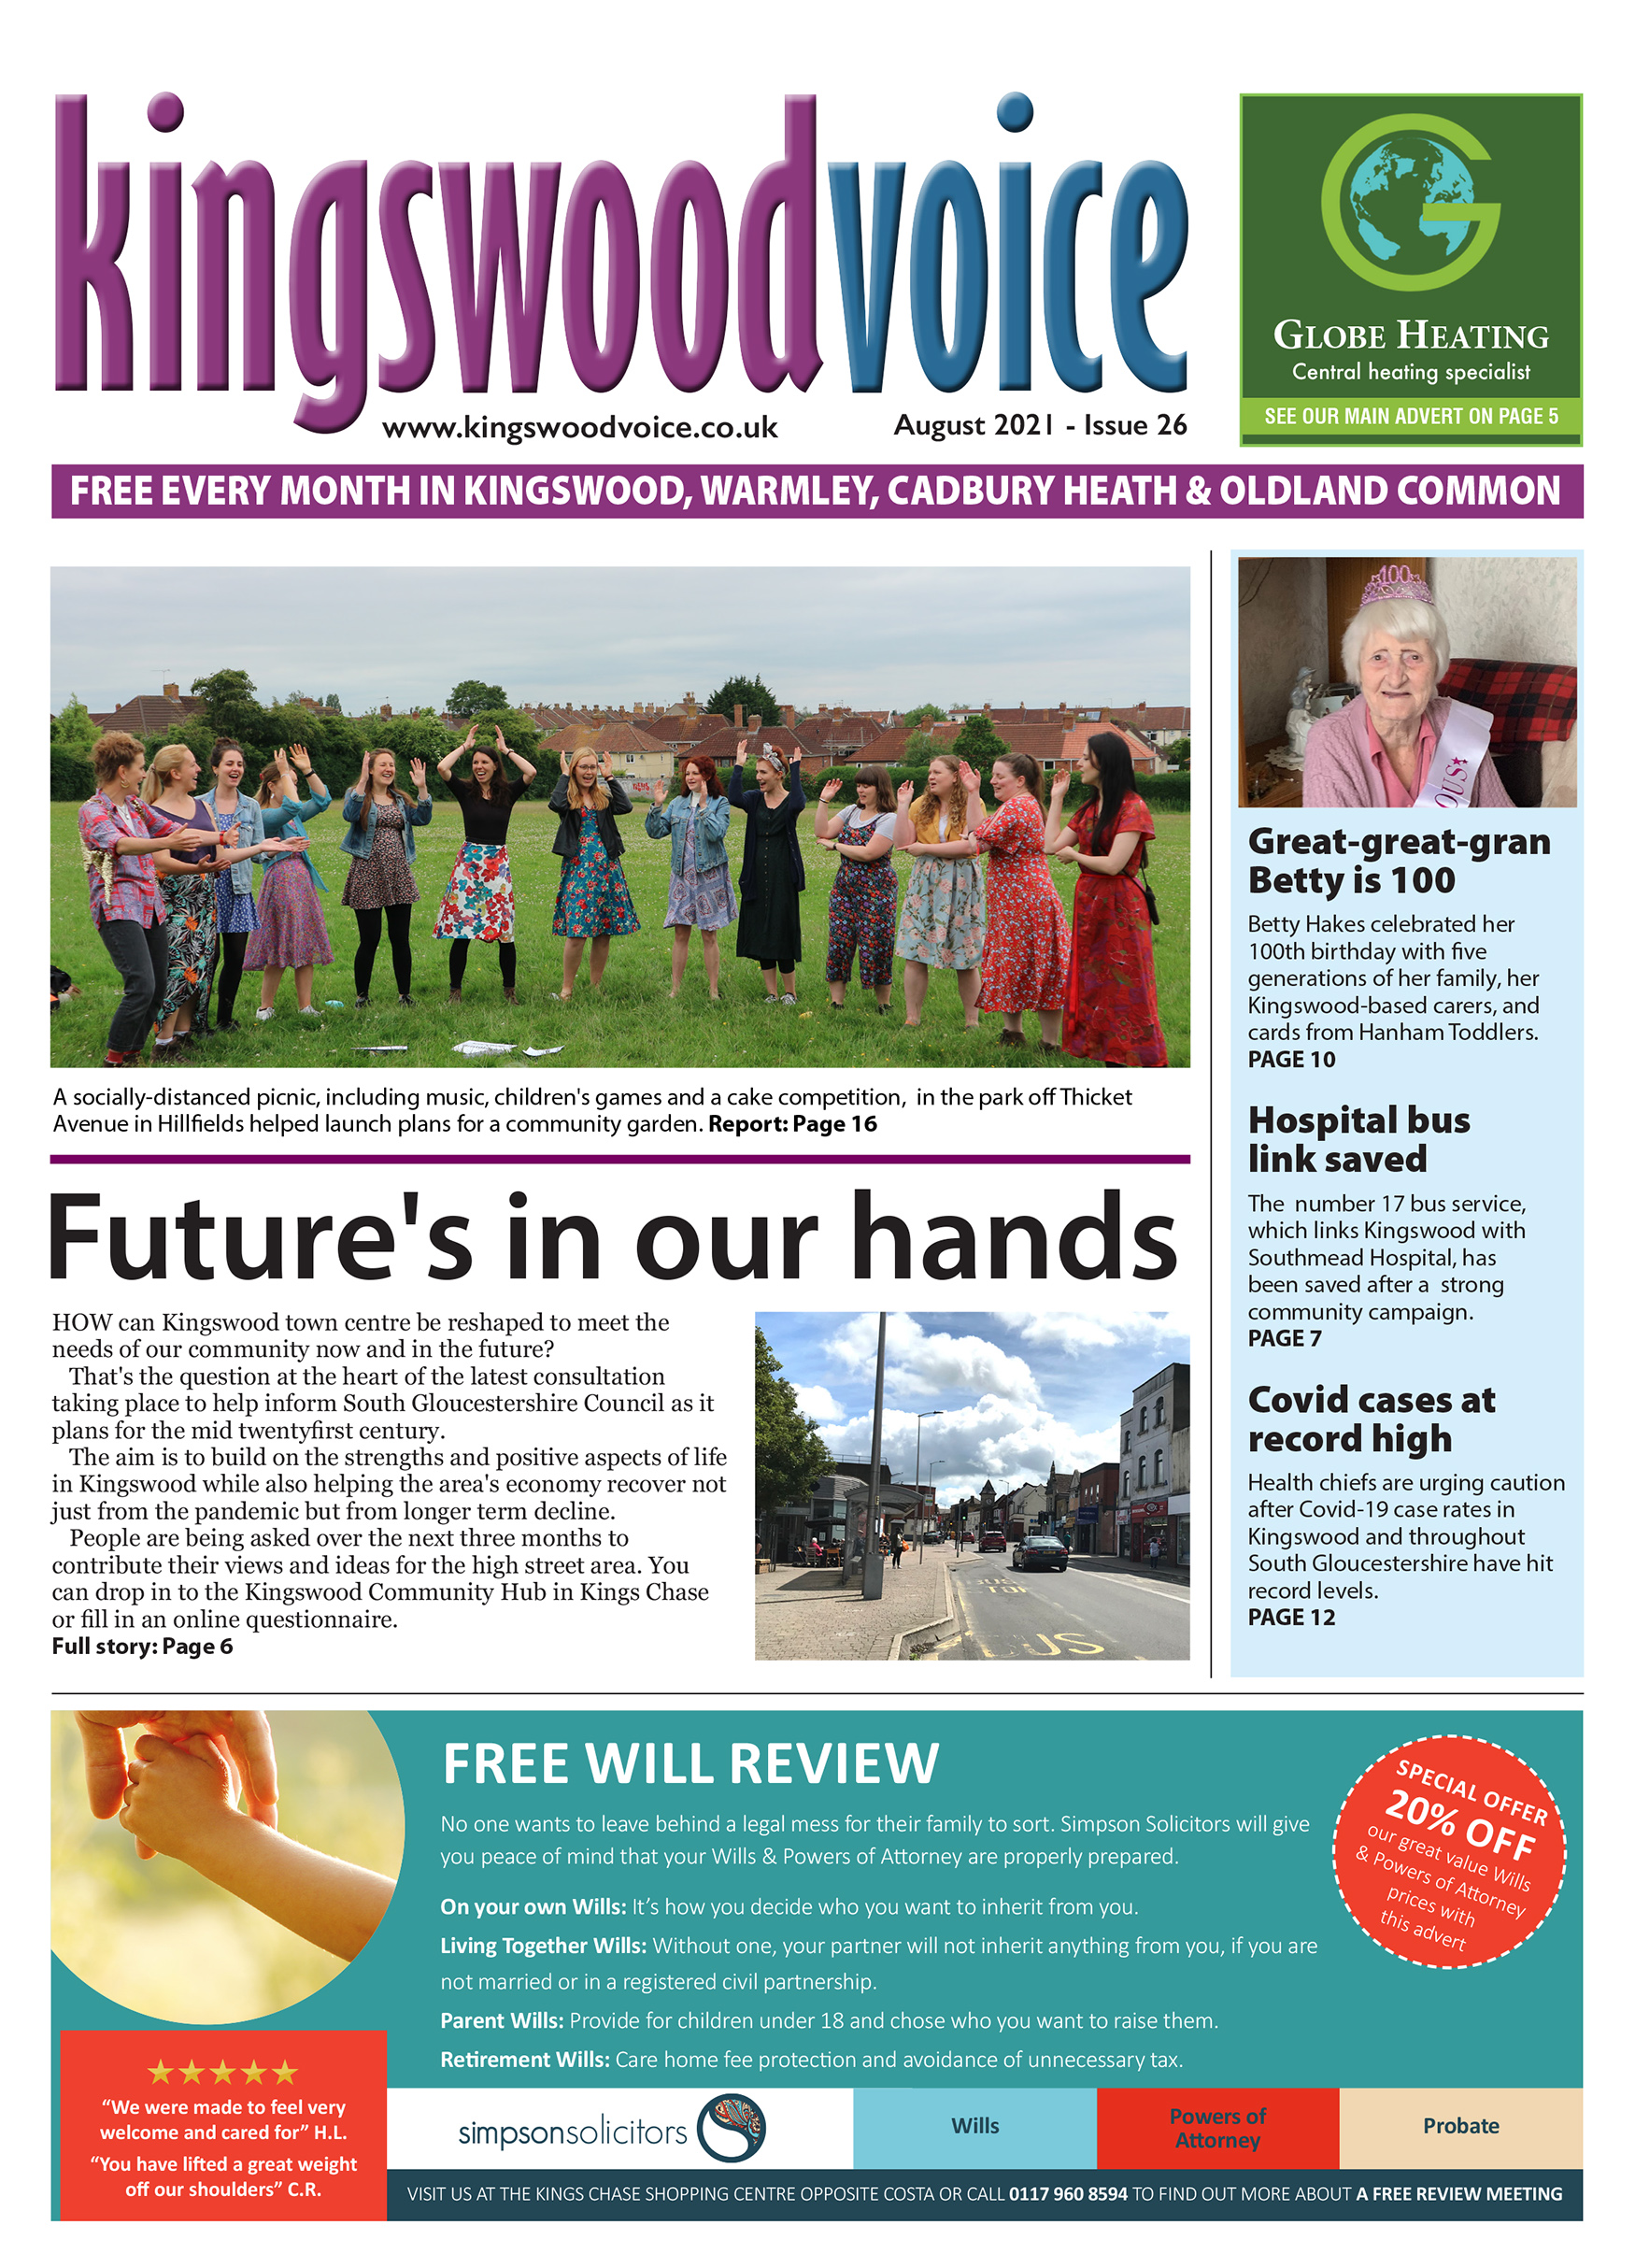 Kingswood Voice August 2021 - Issue 26